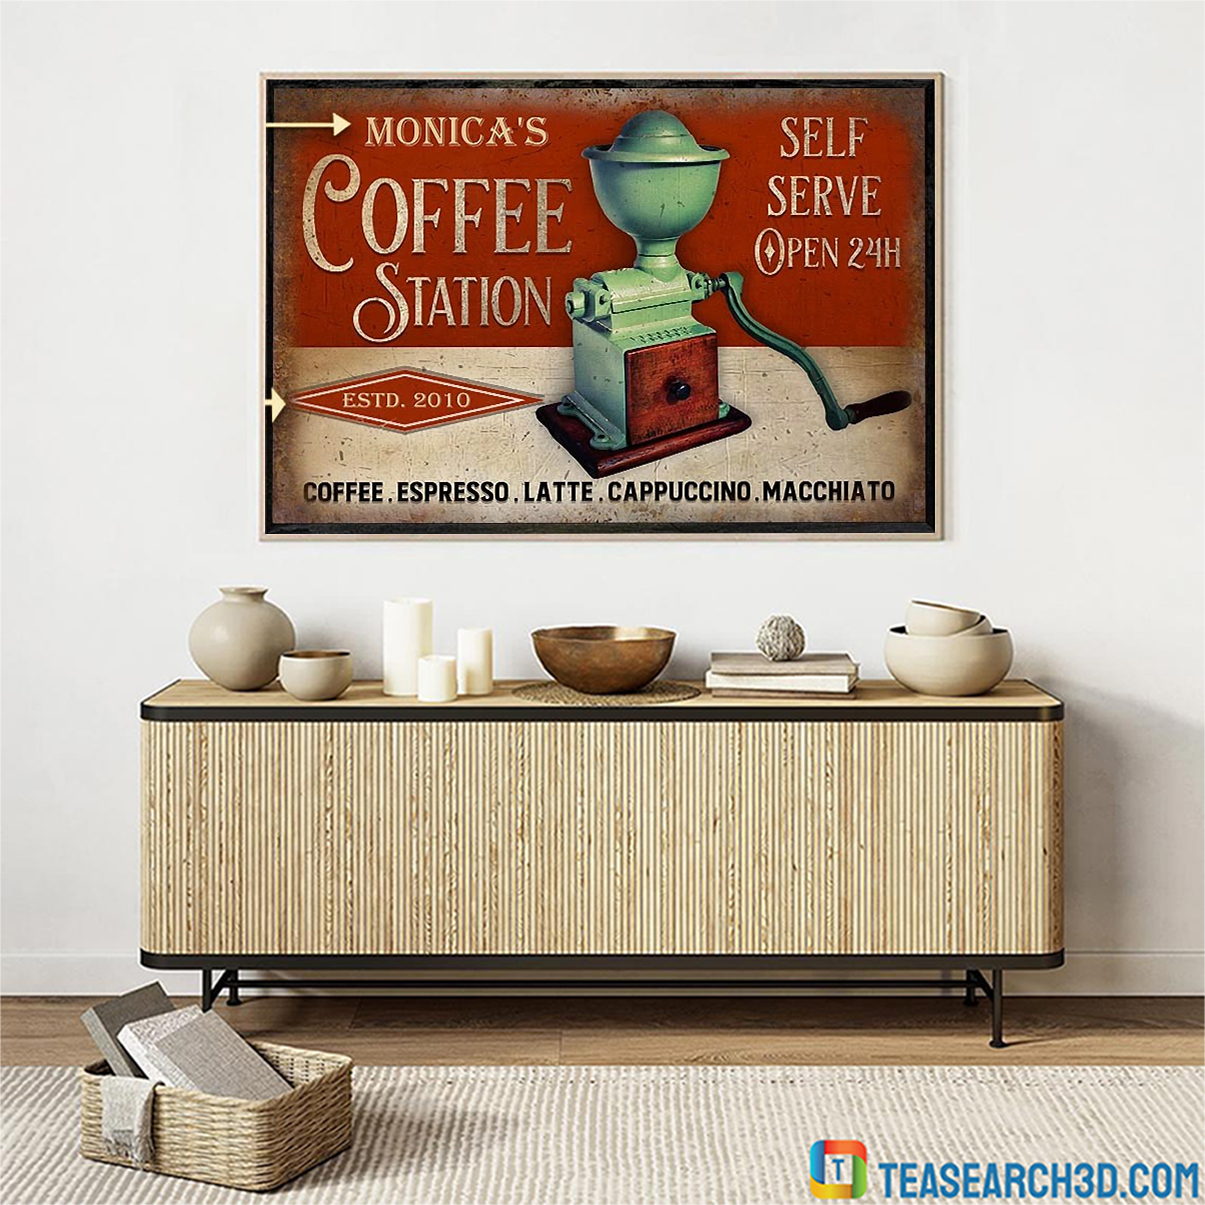 Personalized custom name coffee station self serve poster A1